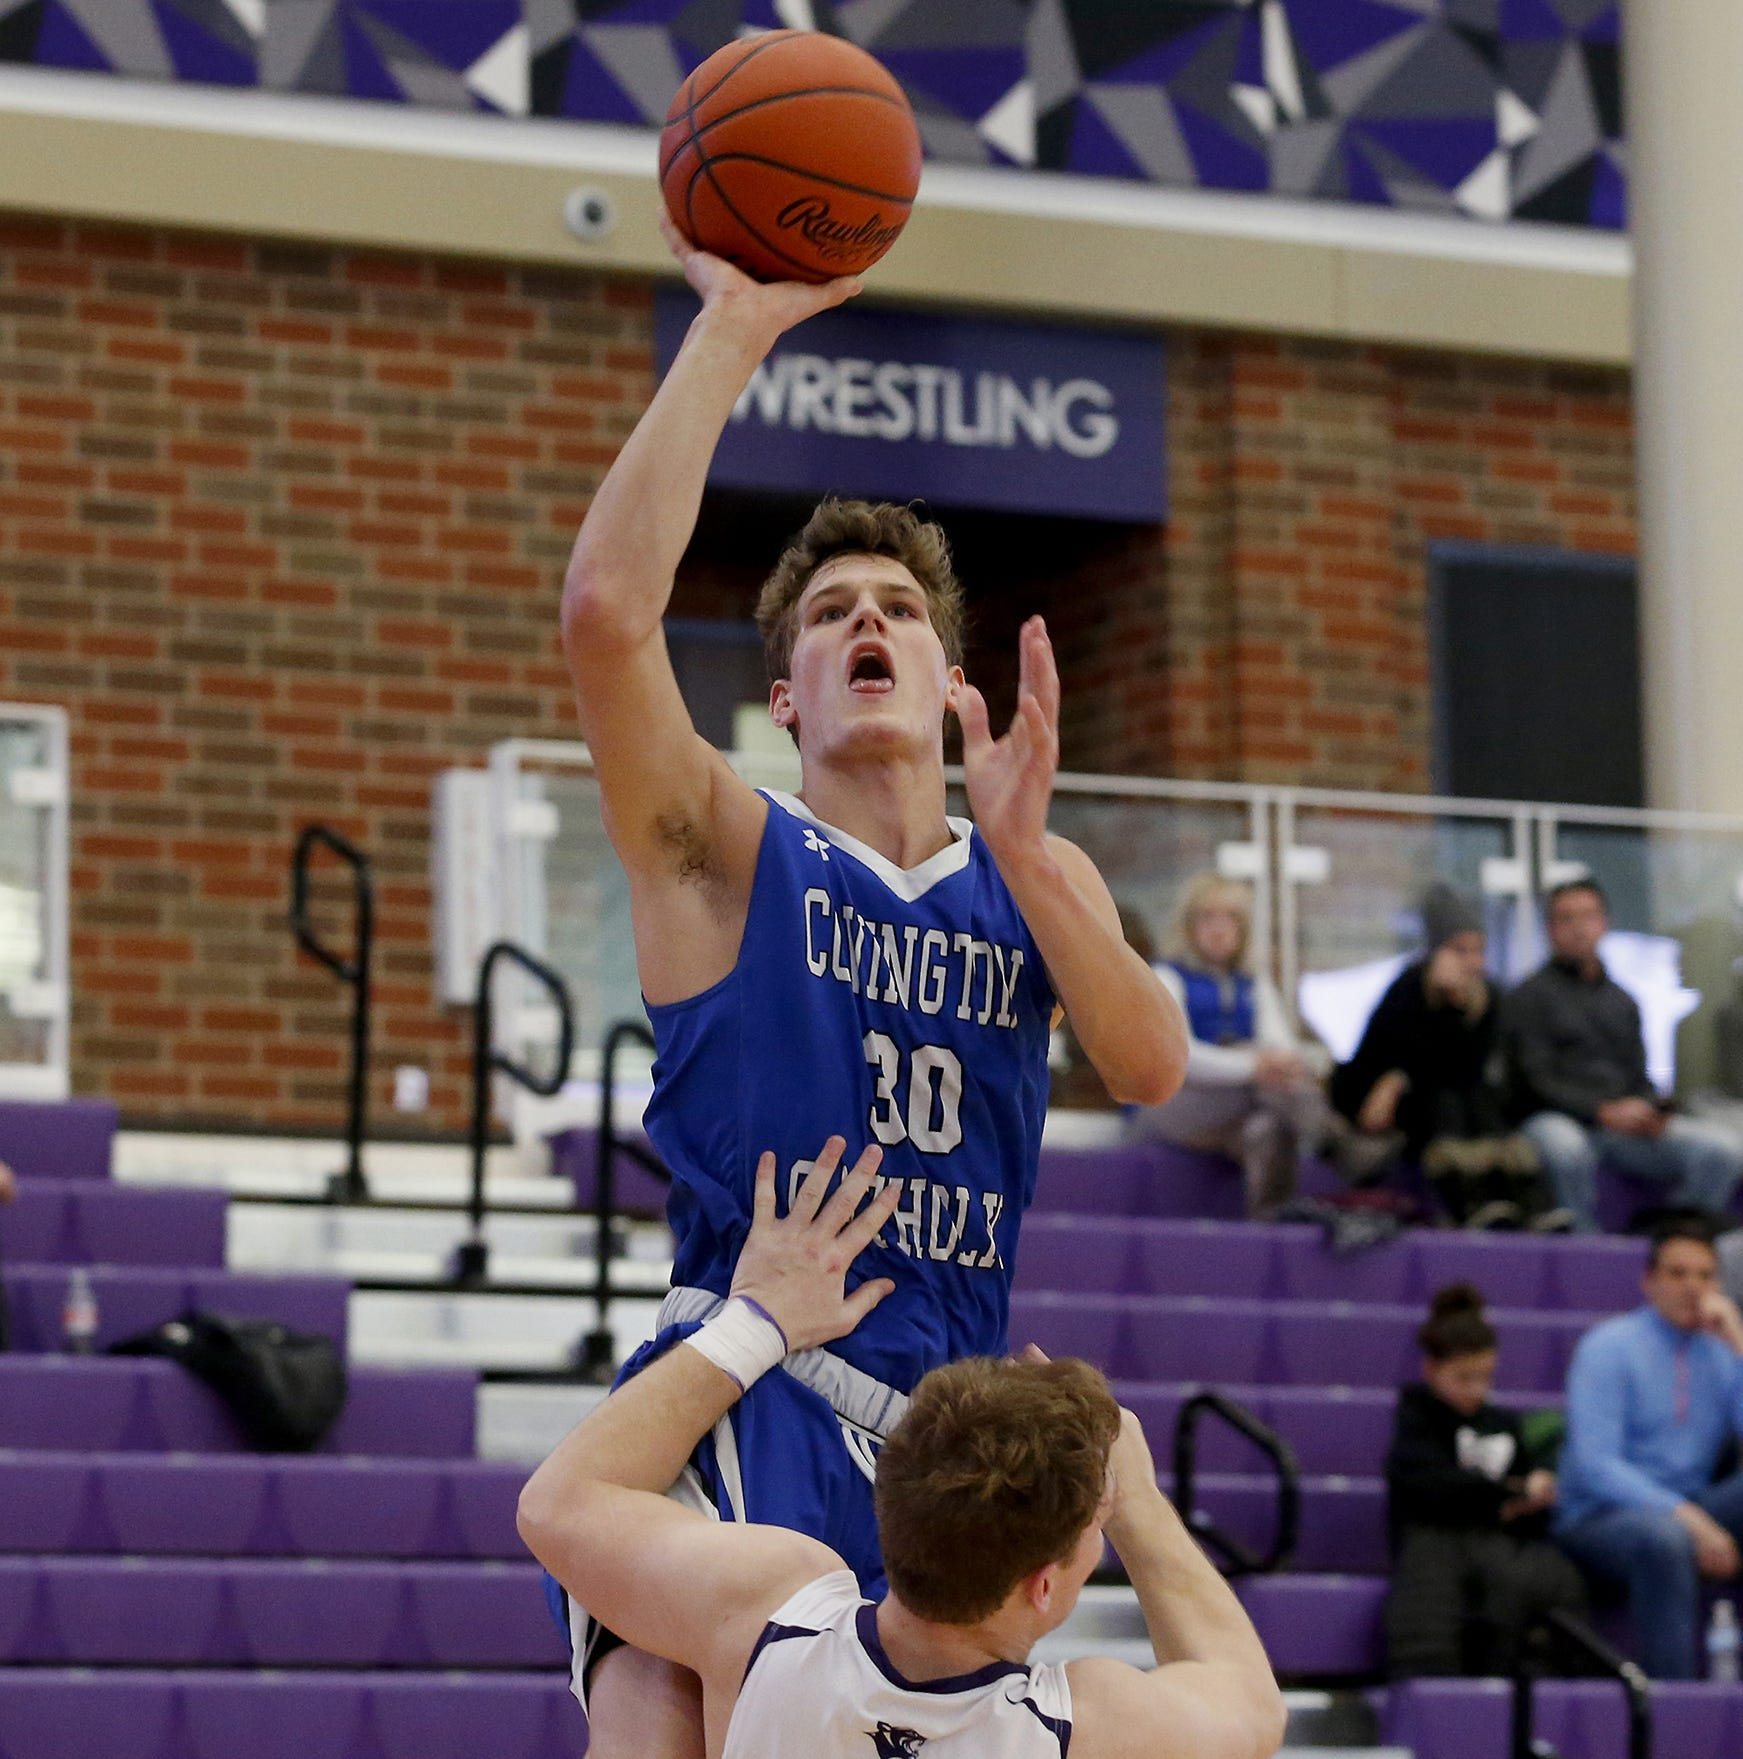 Covington Catholic, CHCA win in boys basketball at King Classic